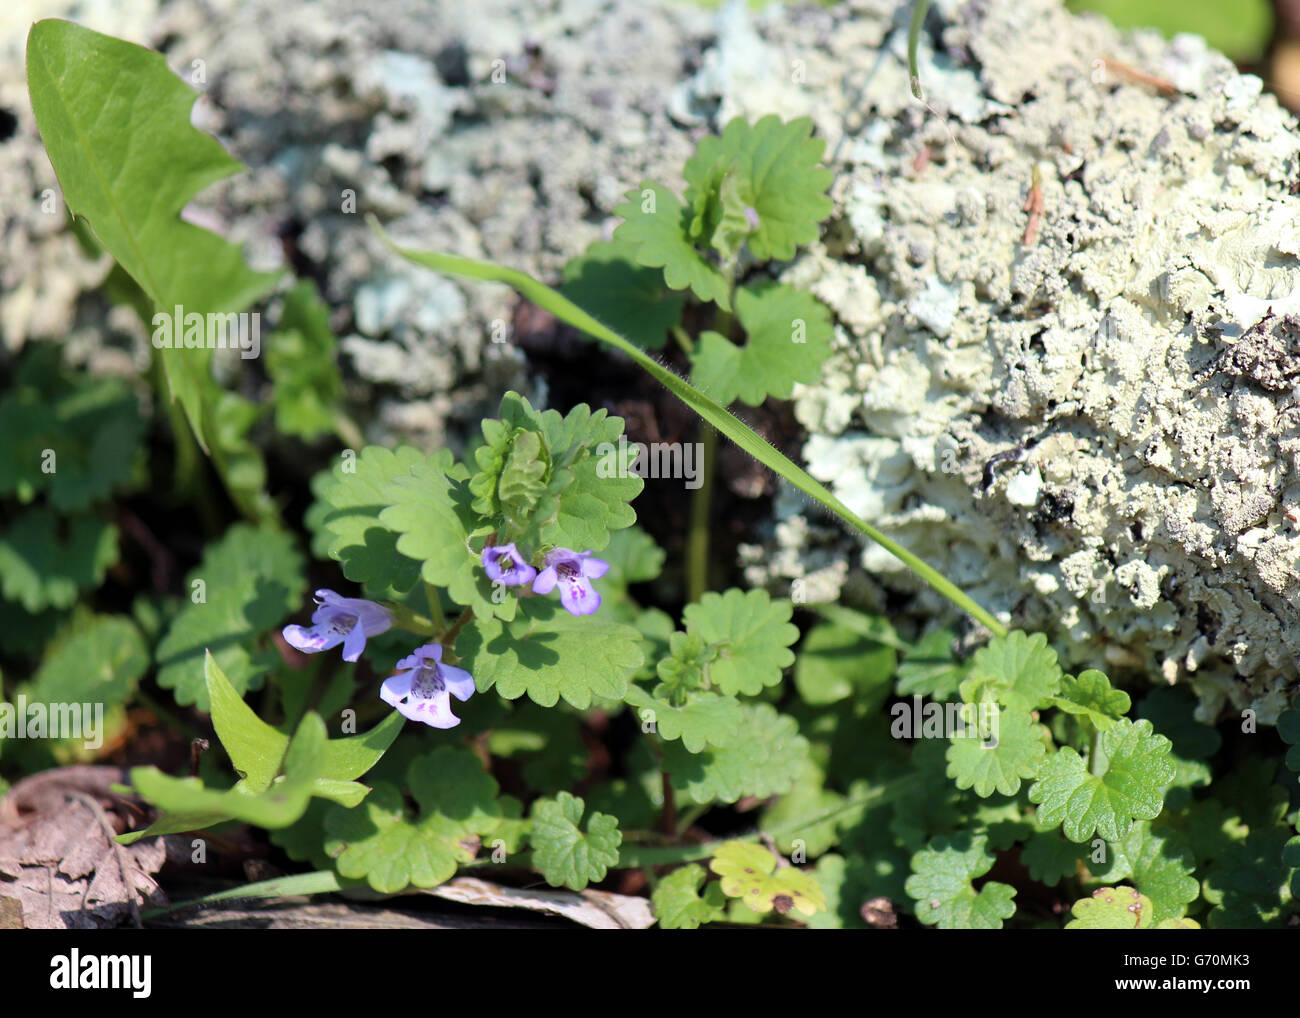 small purple orchid type flower by a lichen cover log Stock